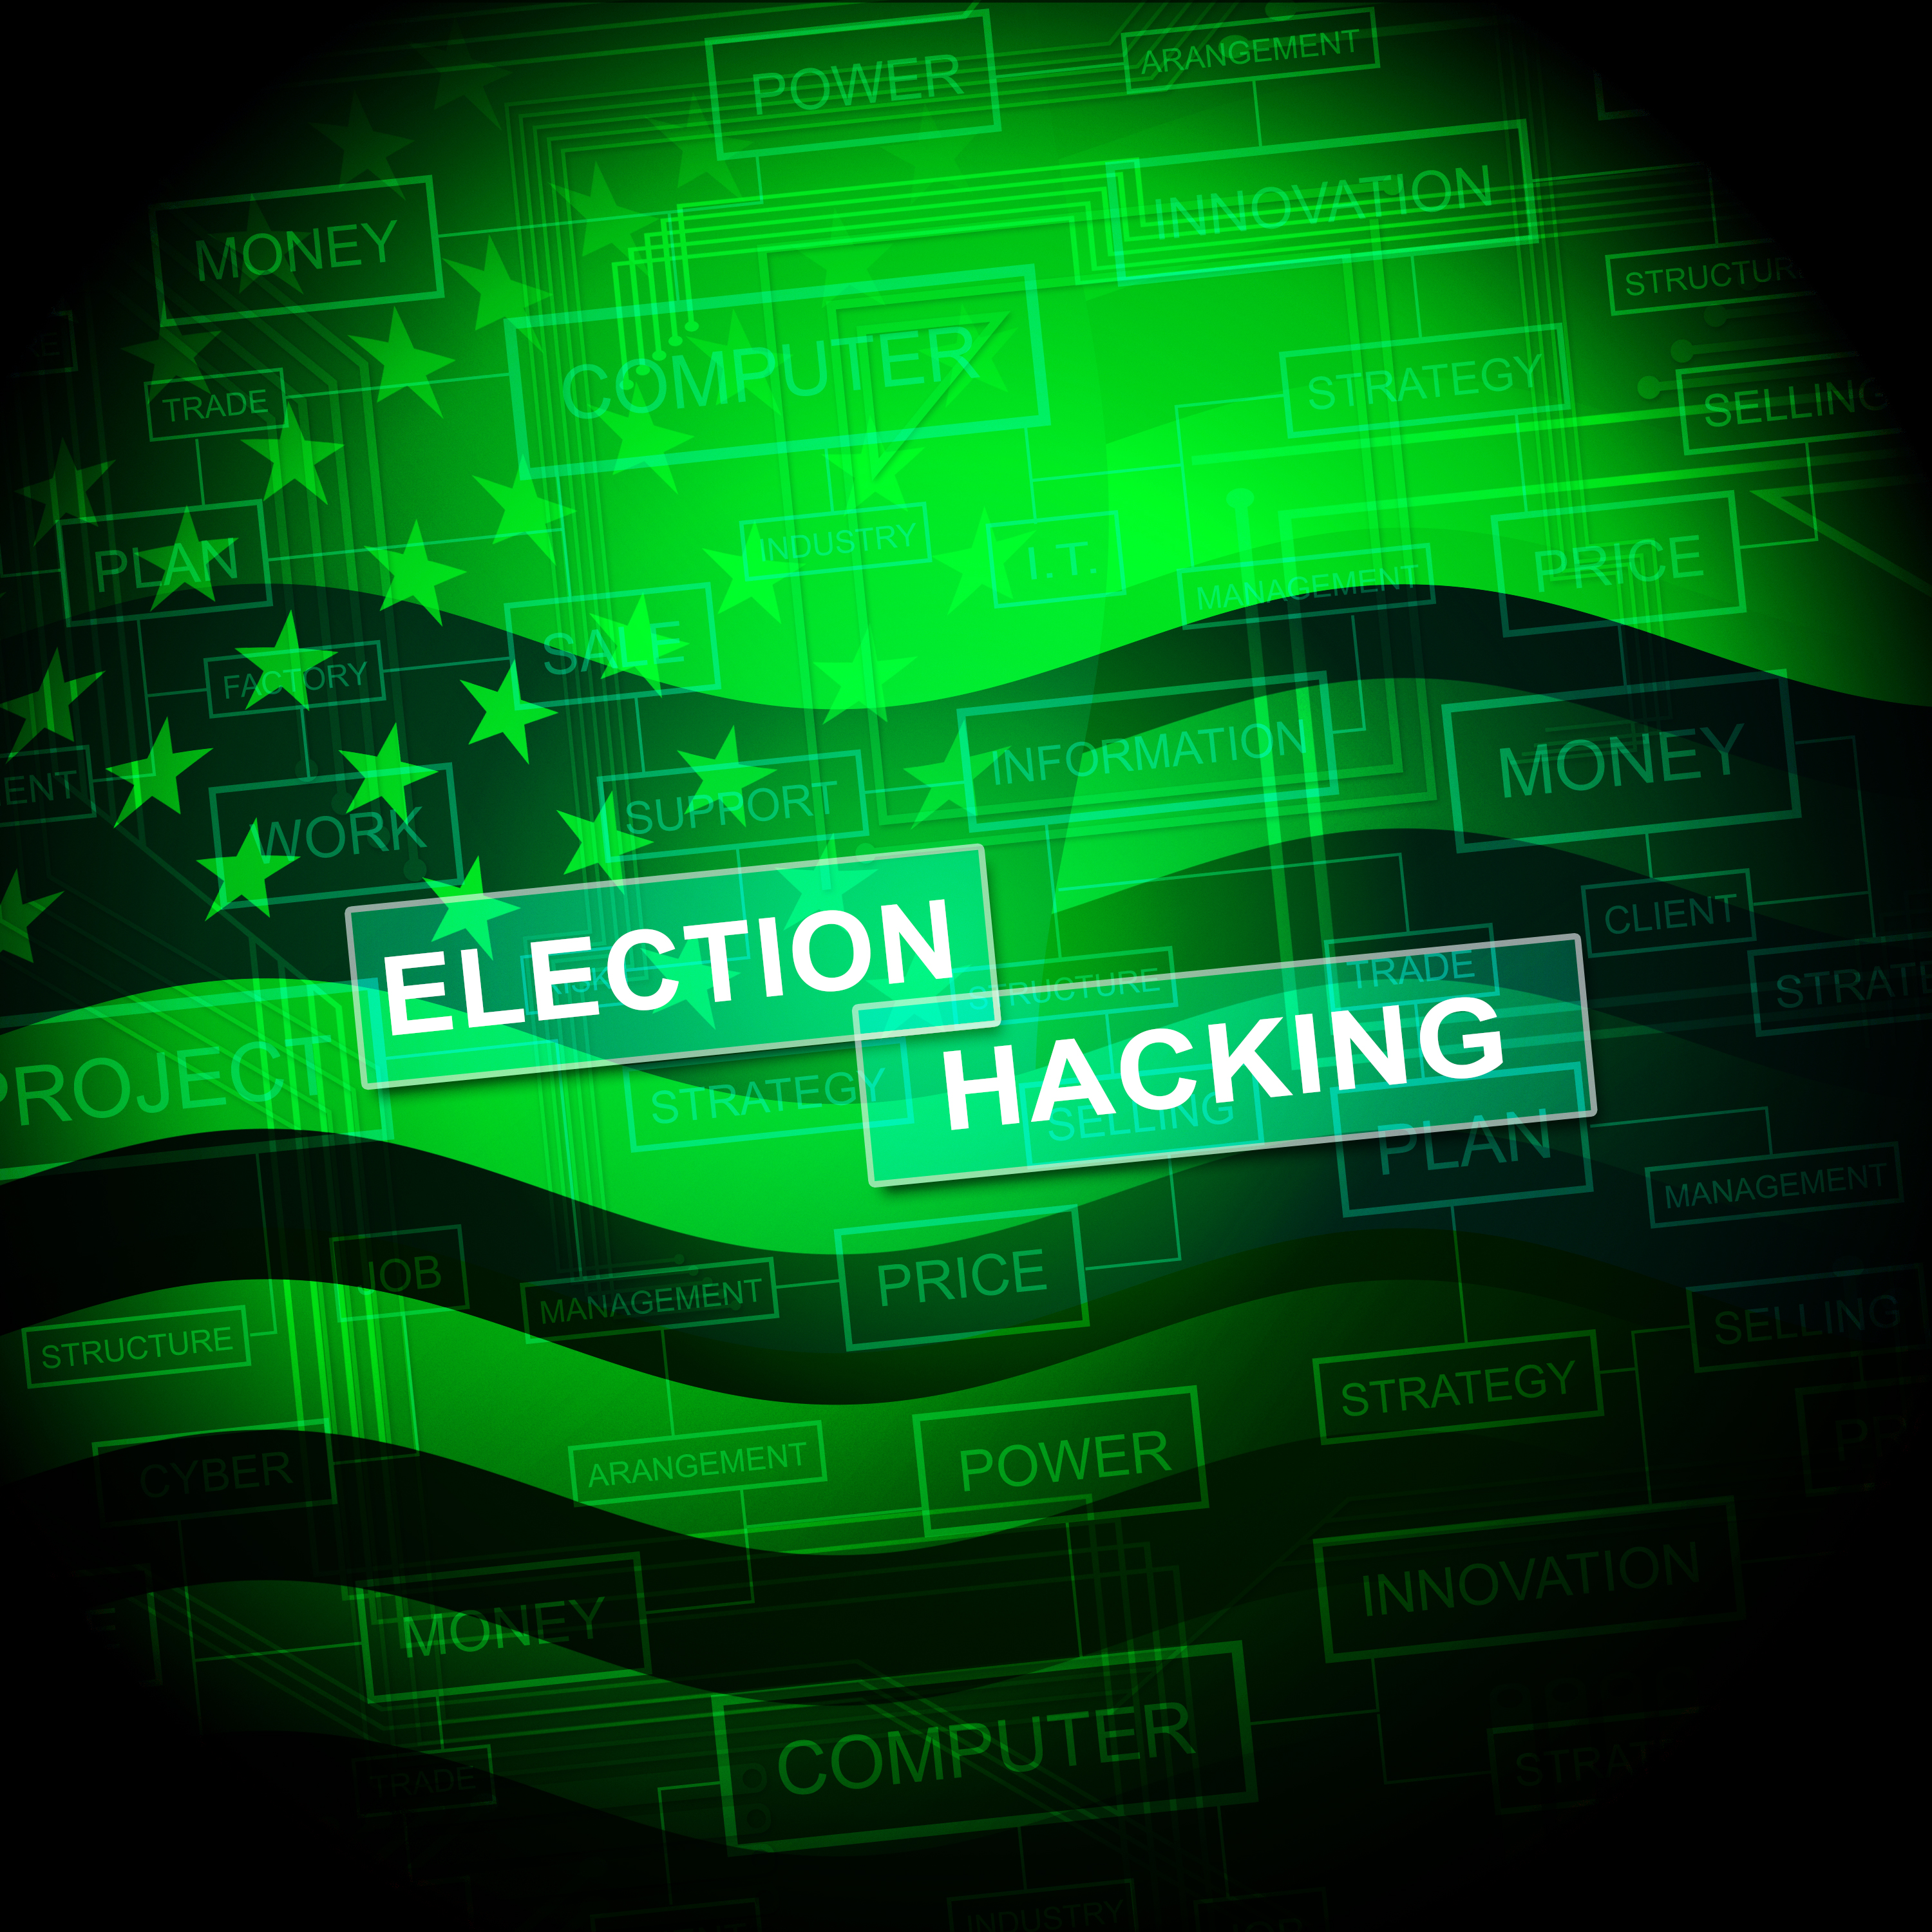 Election_hacking